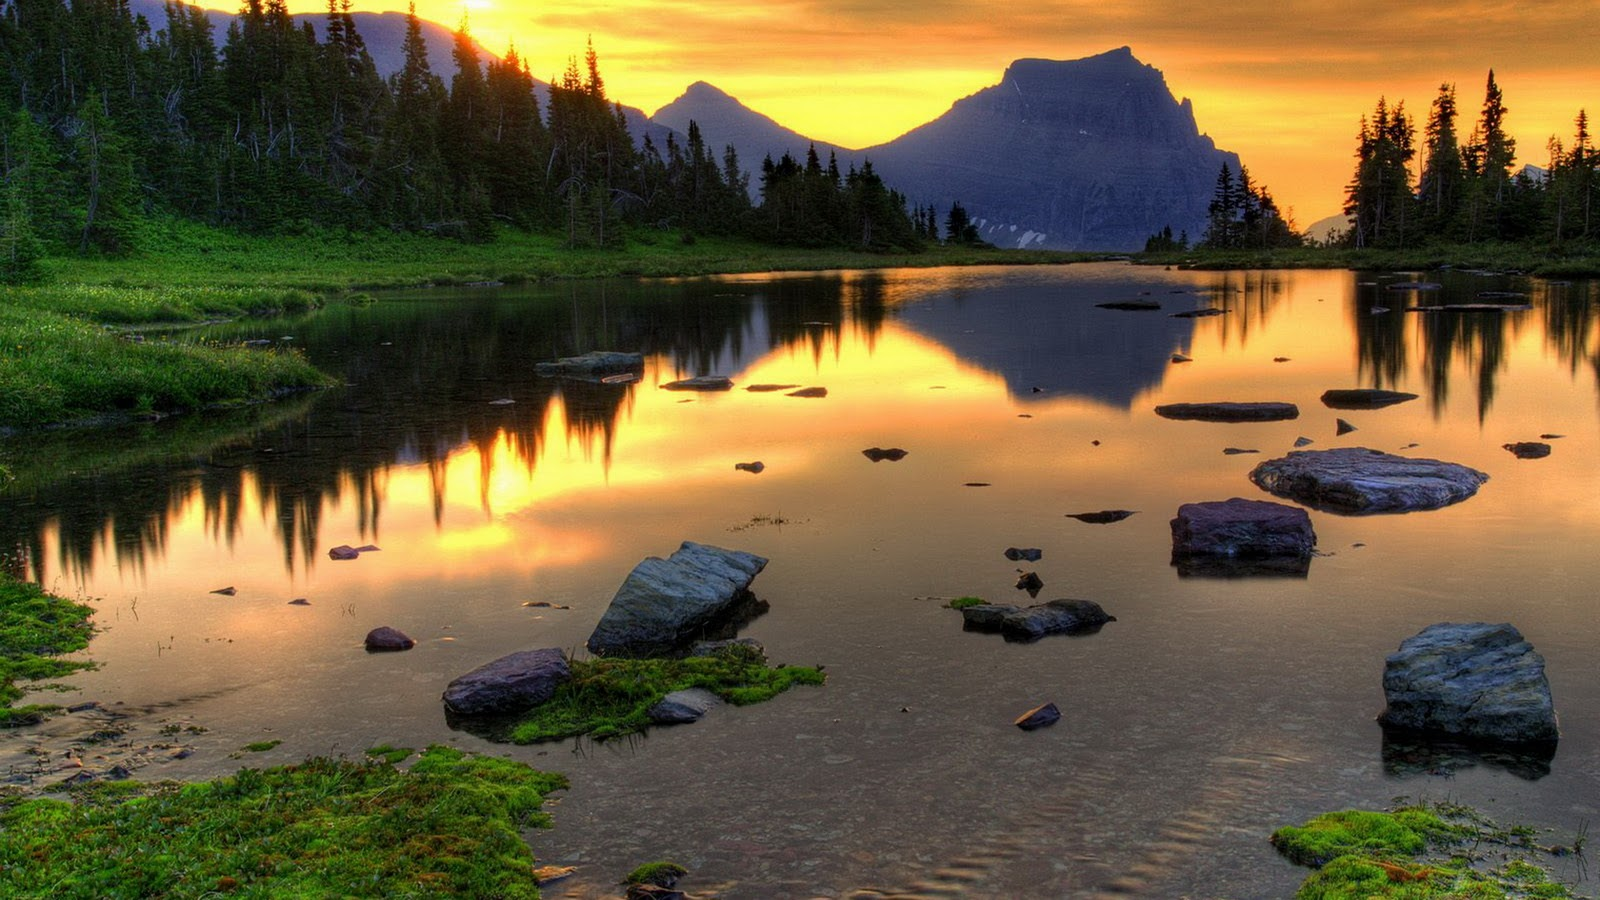 This hd wallpaper is about landscape, evening, sunset, mountain lake, high tatras national park, original wallpaper dimensions is 1920x1080px,. Mountain Lake Sunset 4771 Wall Paper